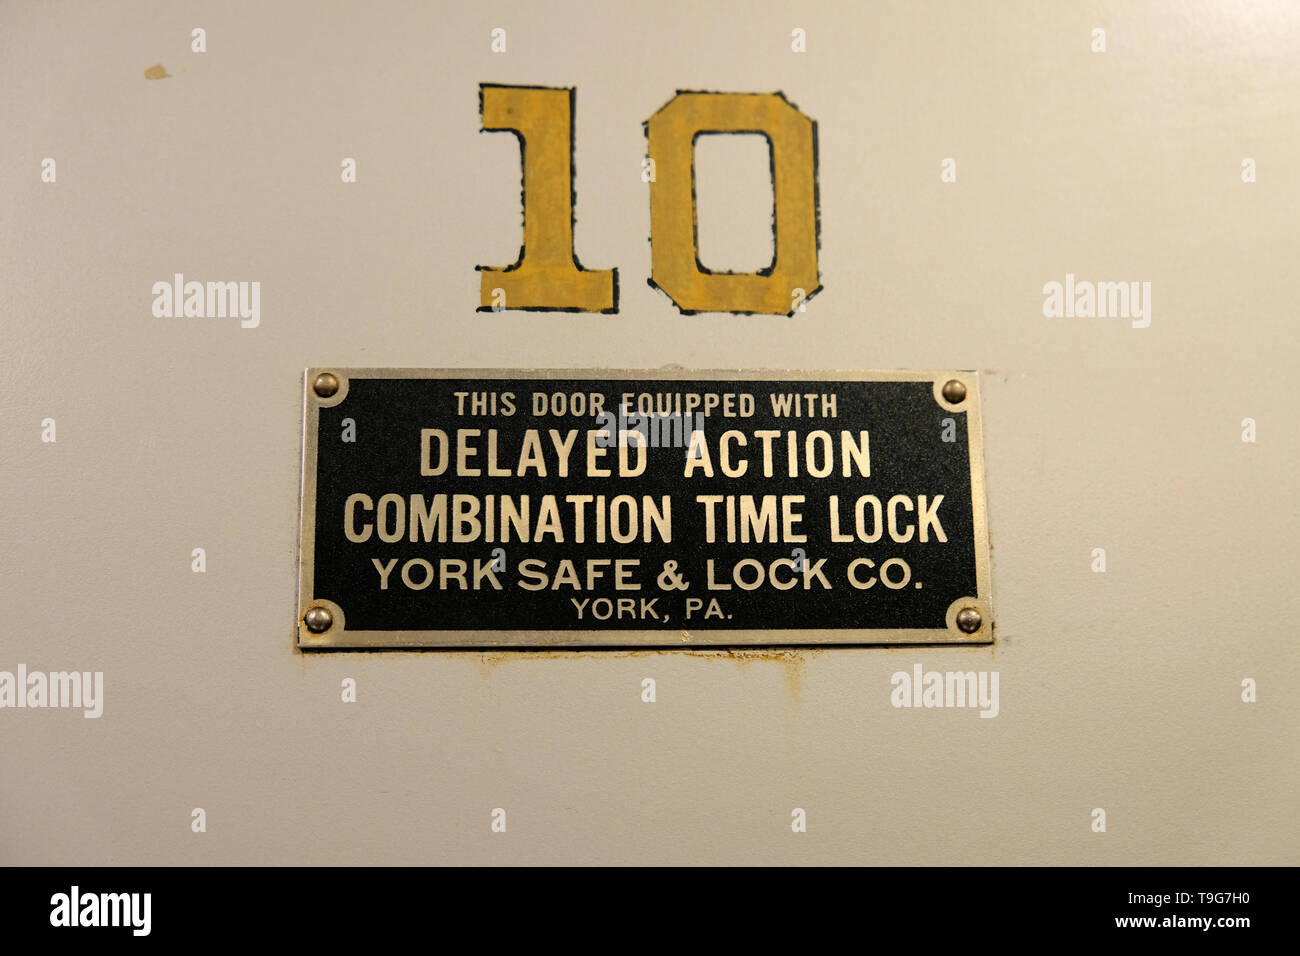 Plate on an old bank vault at the 21c Museum Hotel in Durham, North Carolina, USA; Delayed Action Combination Time Lock, York Safe & Lock Co. York PA. - Stock Image